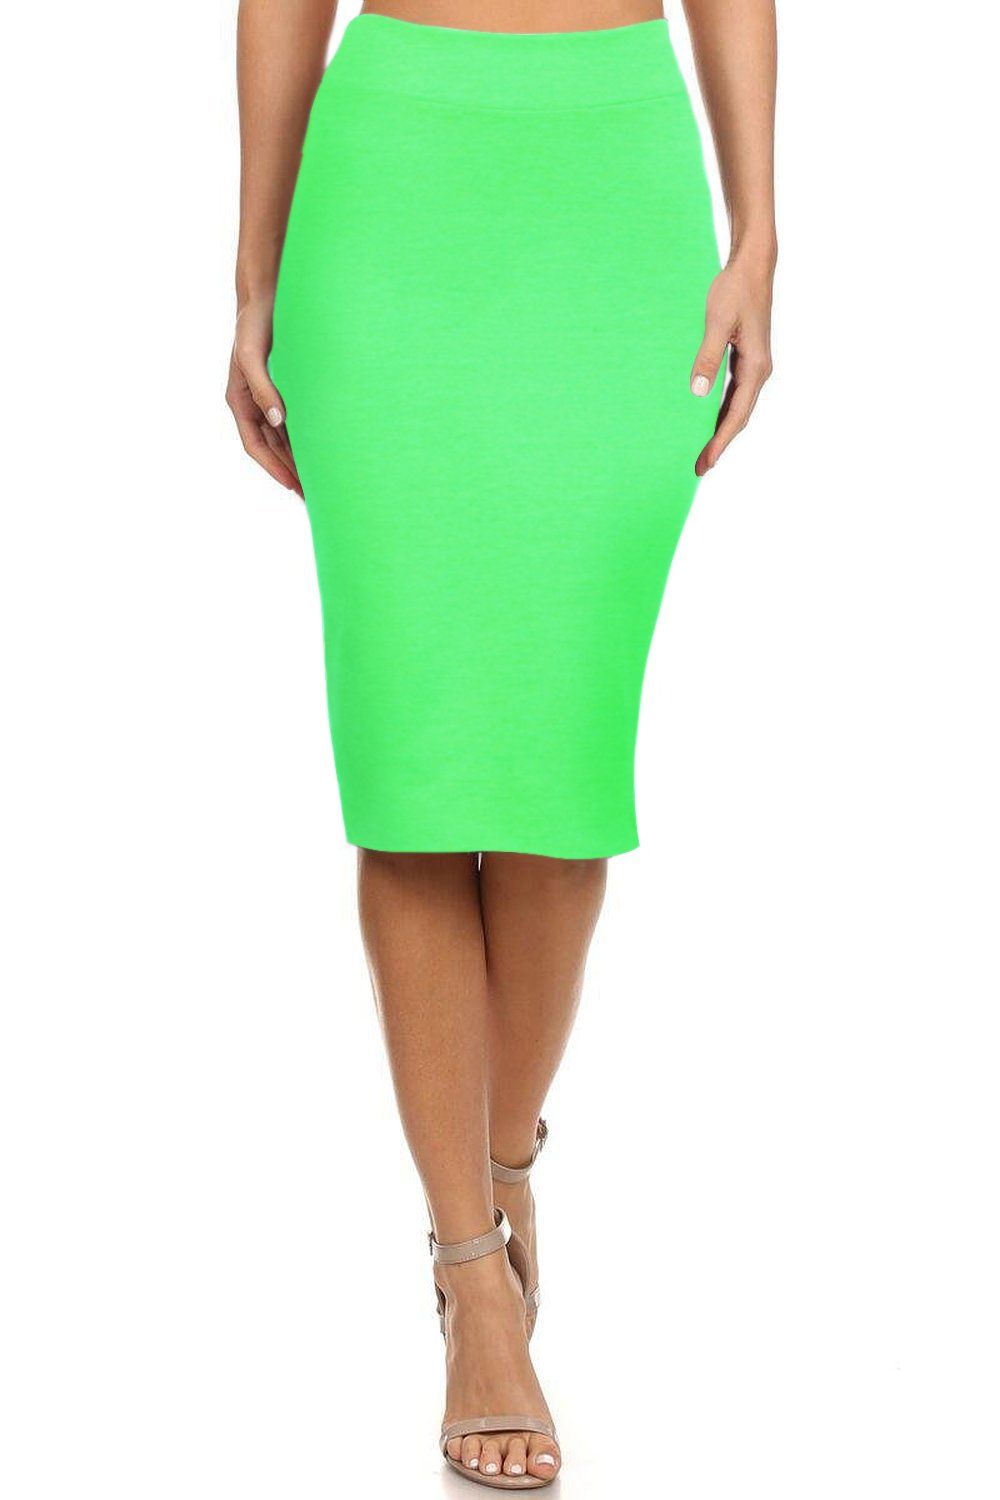 Simlu Women's Below the Knee Pencil Skirt for Office Wear - Made in USA, Lime, X-Large